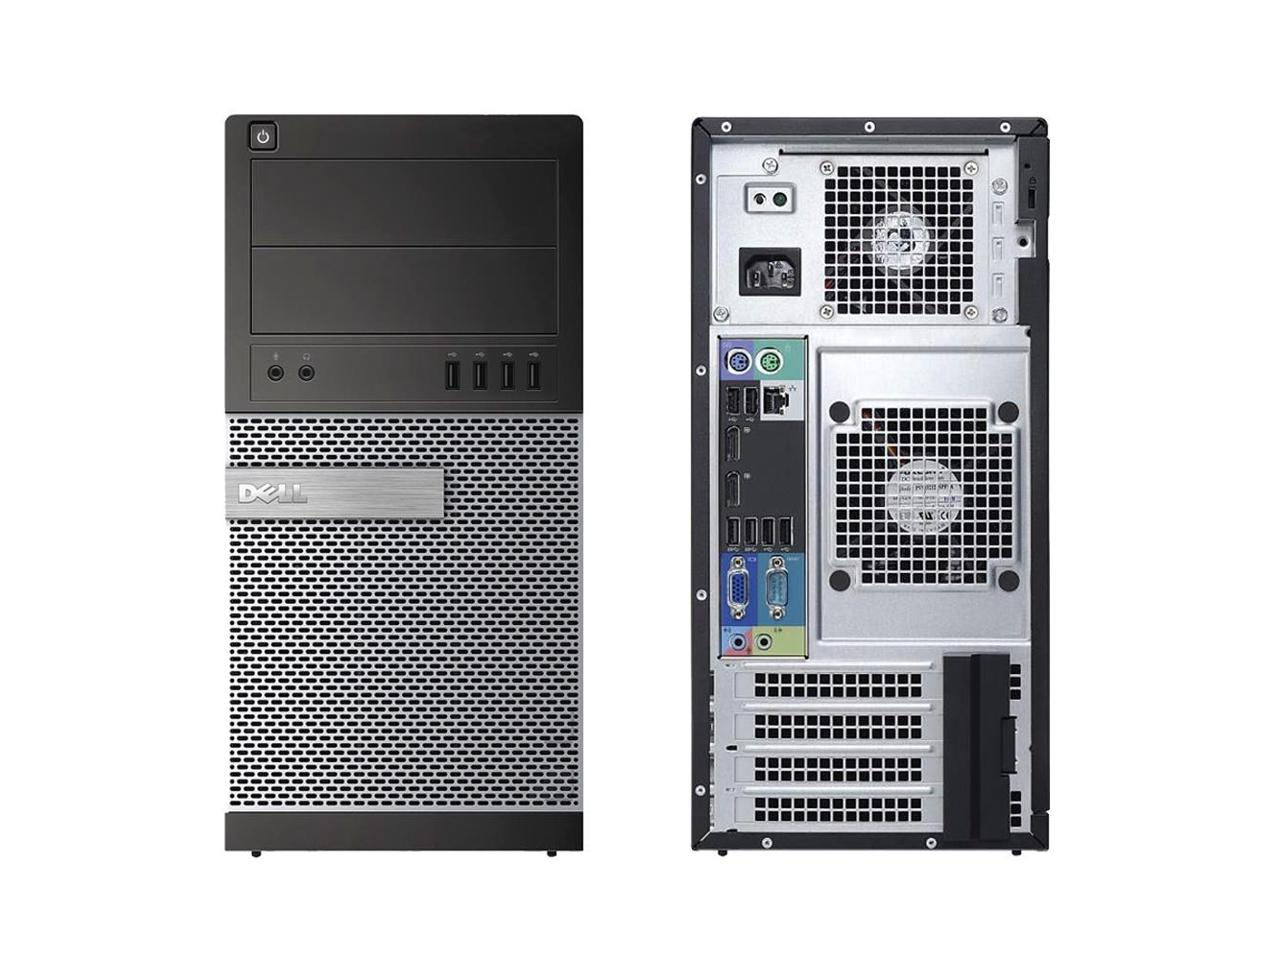 Refurbished Dell Optiplex 7010